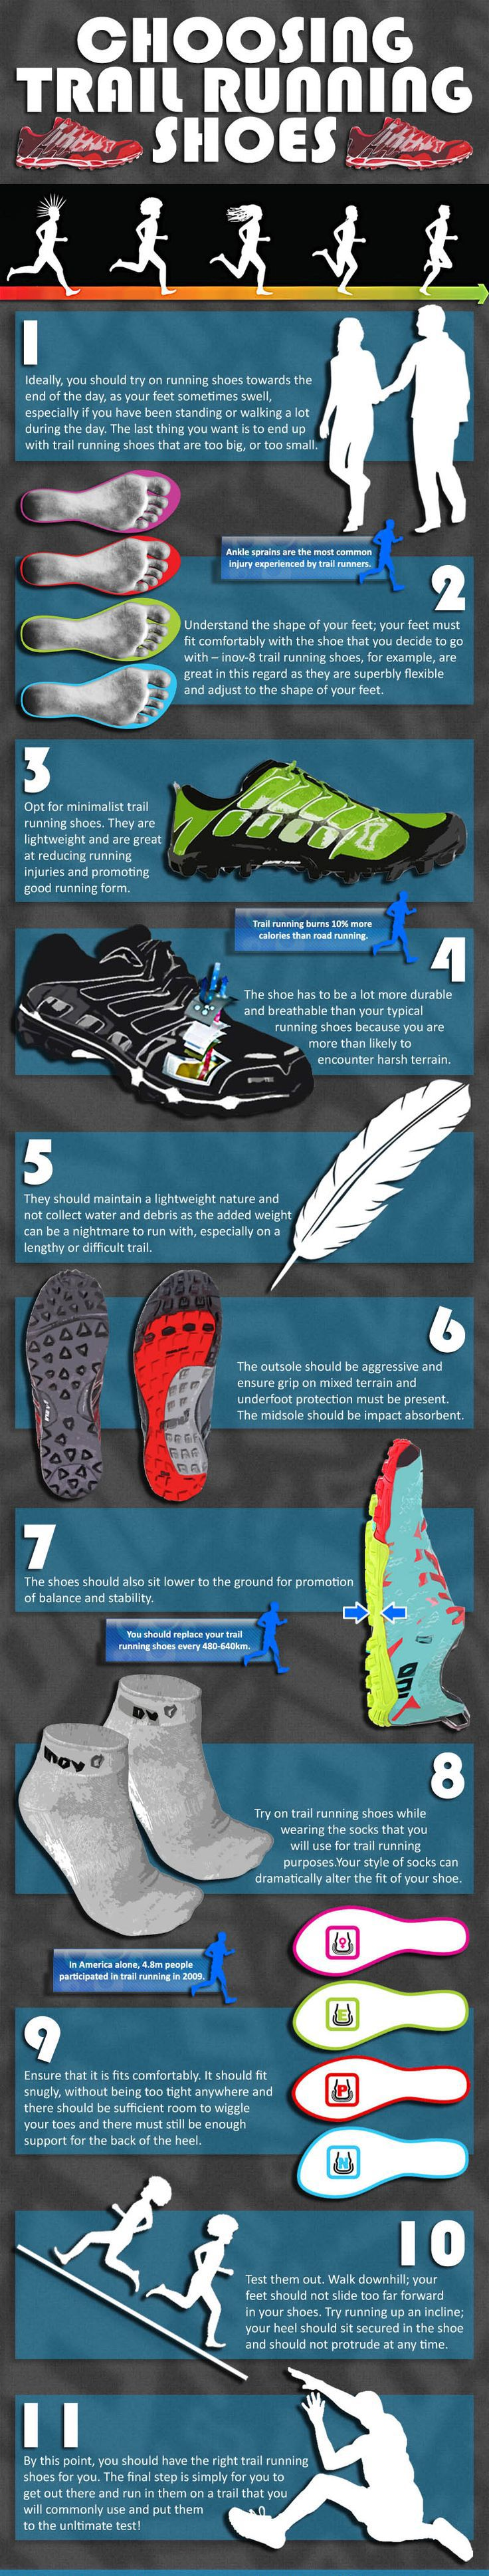 Best mens trail running shoes #shoes #running